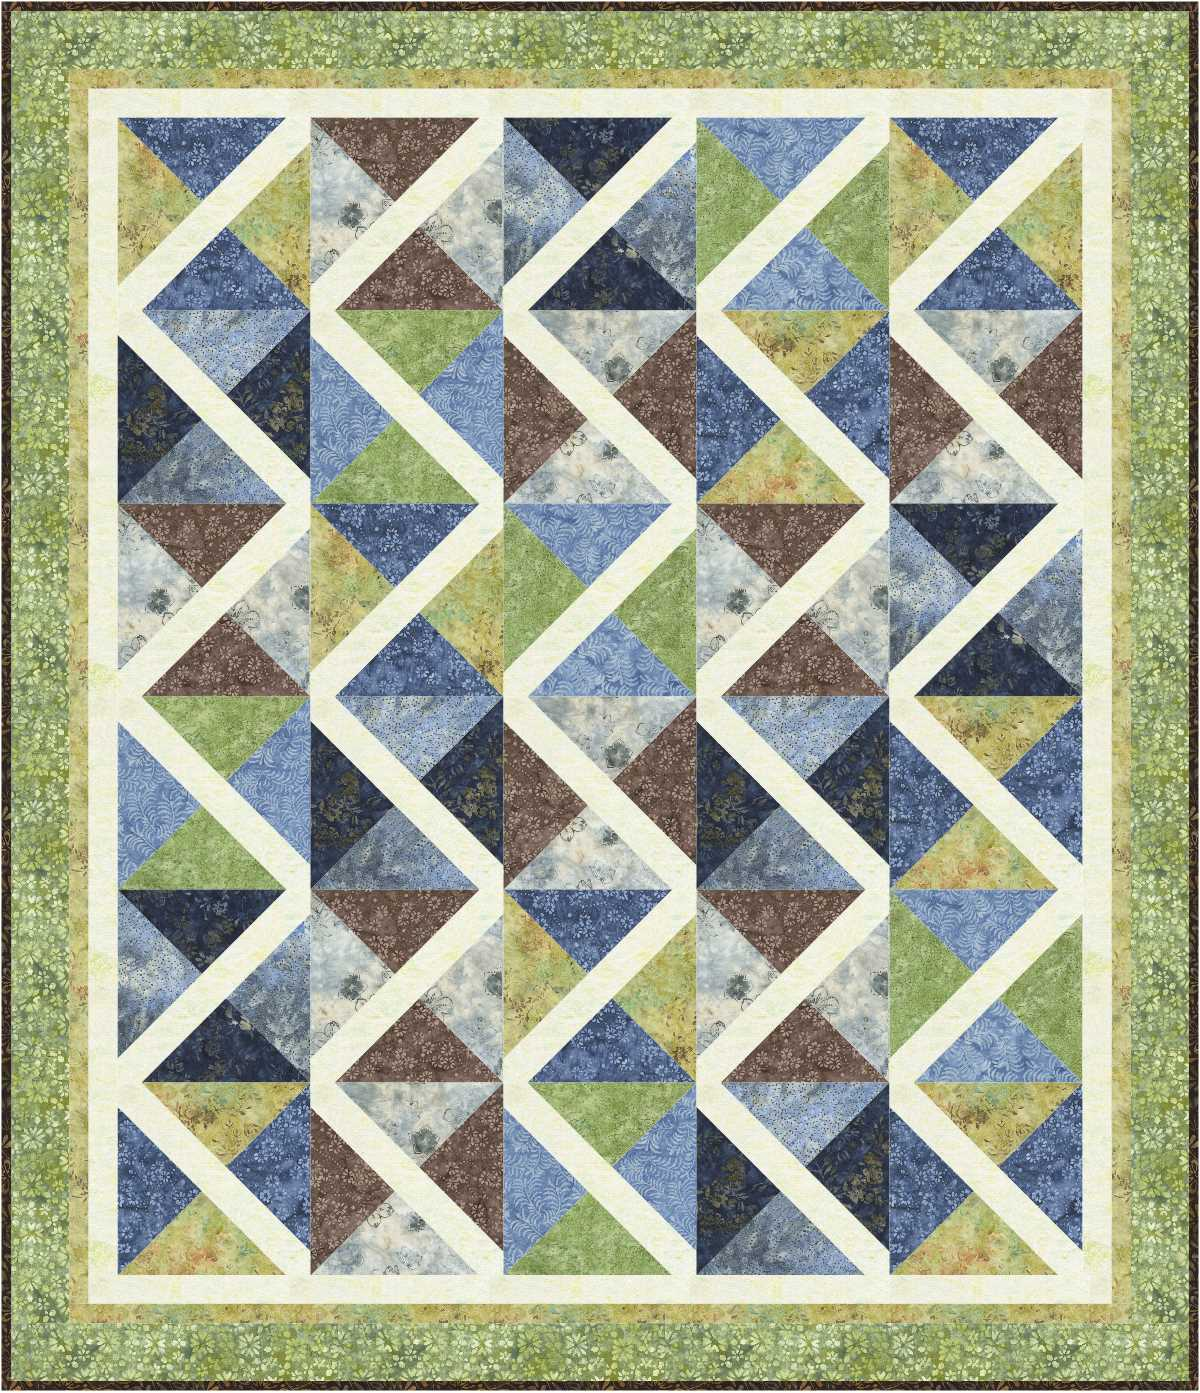 Pieced Brain: Serpentine - Free quilt pattern